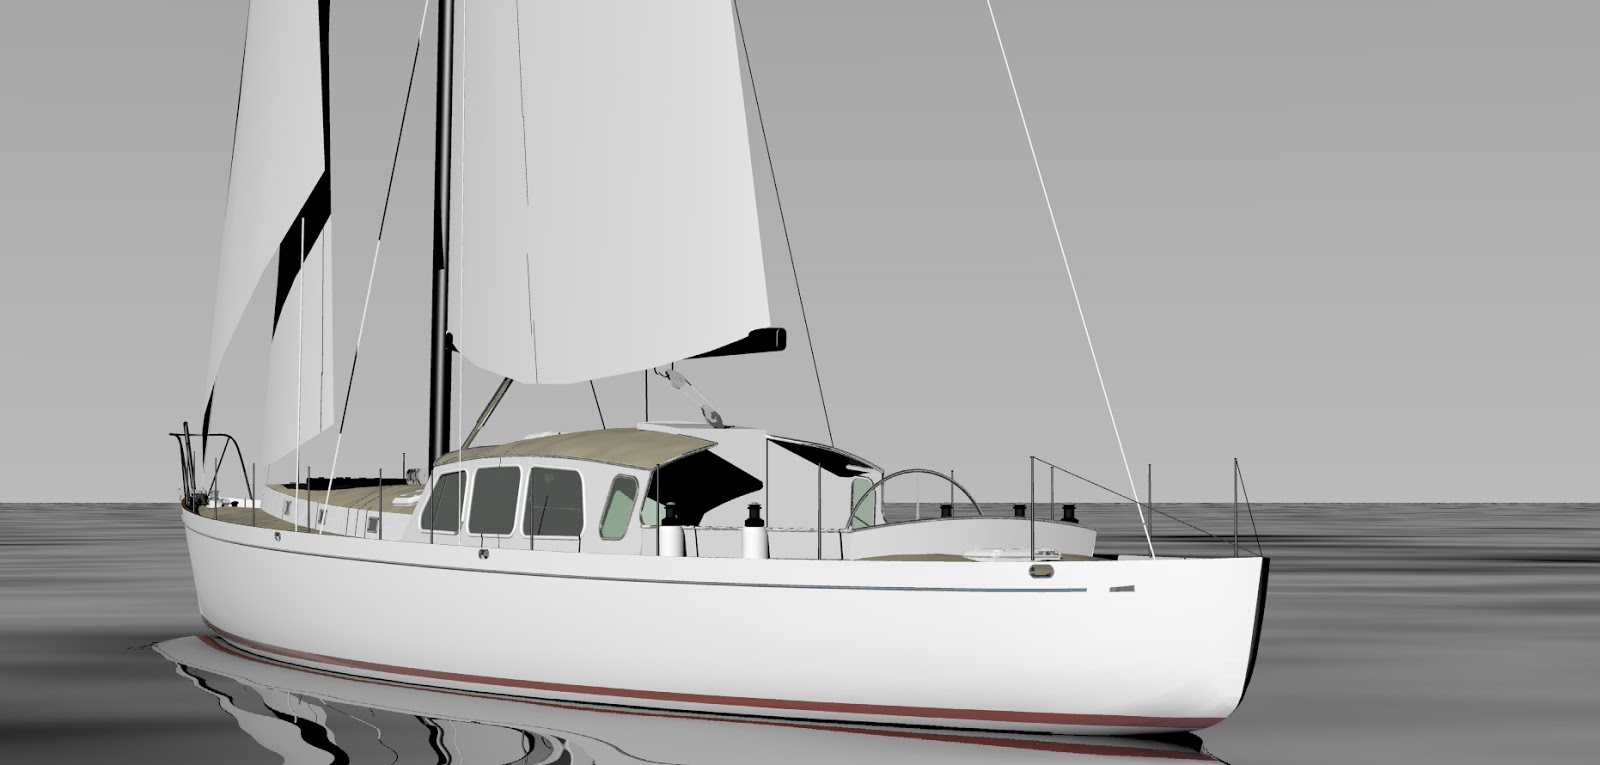 Tanton yacht design boat design of the month march 2016 for William garden sailboat designs